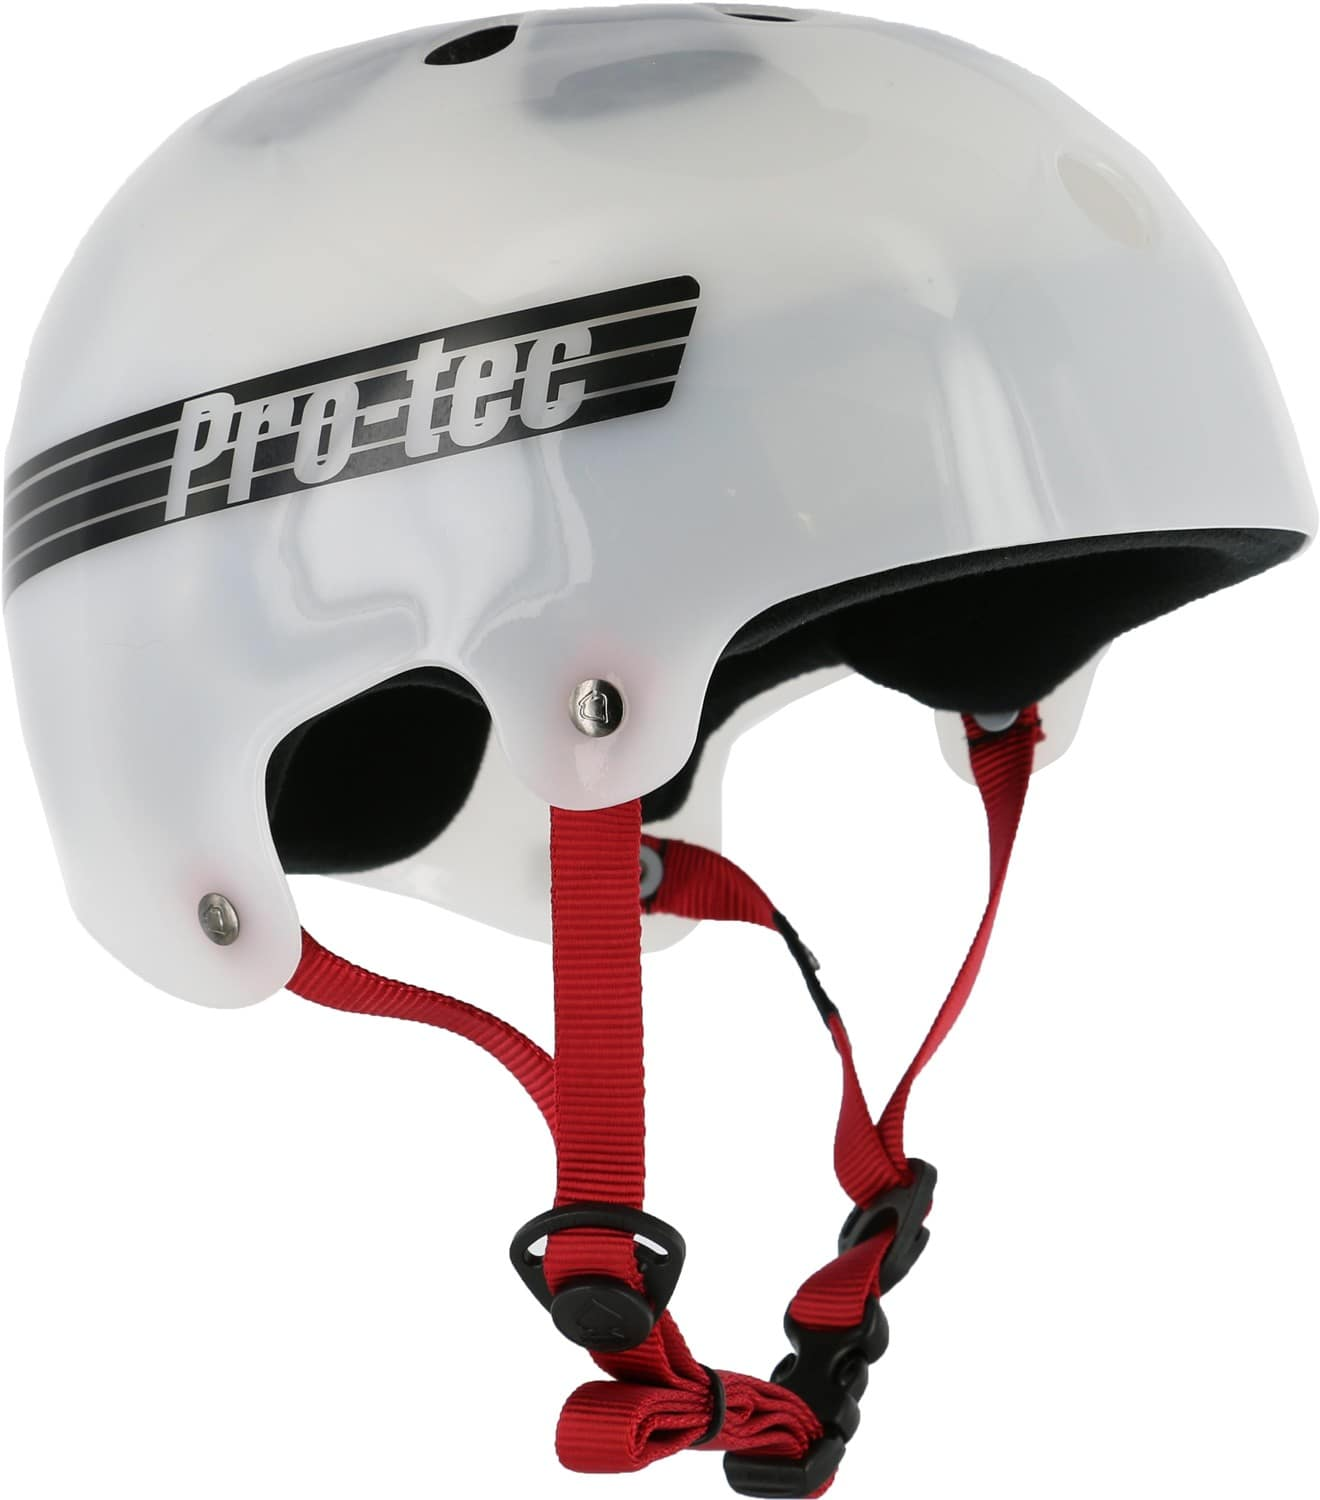 Protec Classic Bucky Skate Helmet Free Shipping